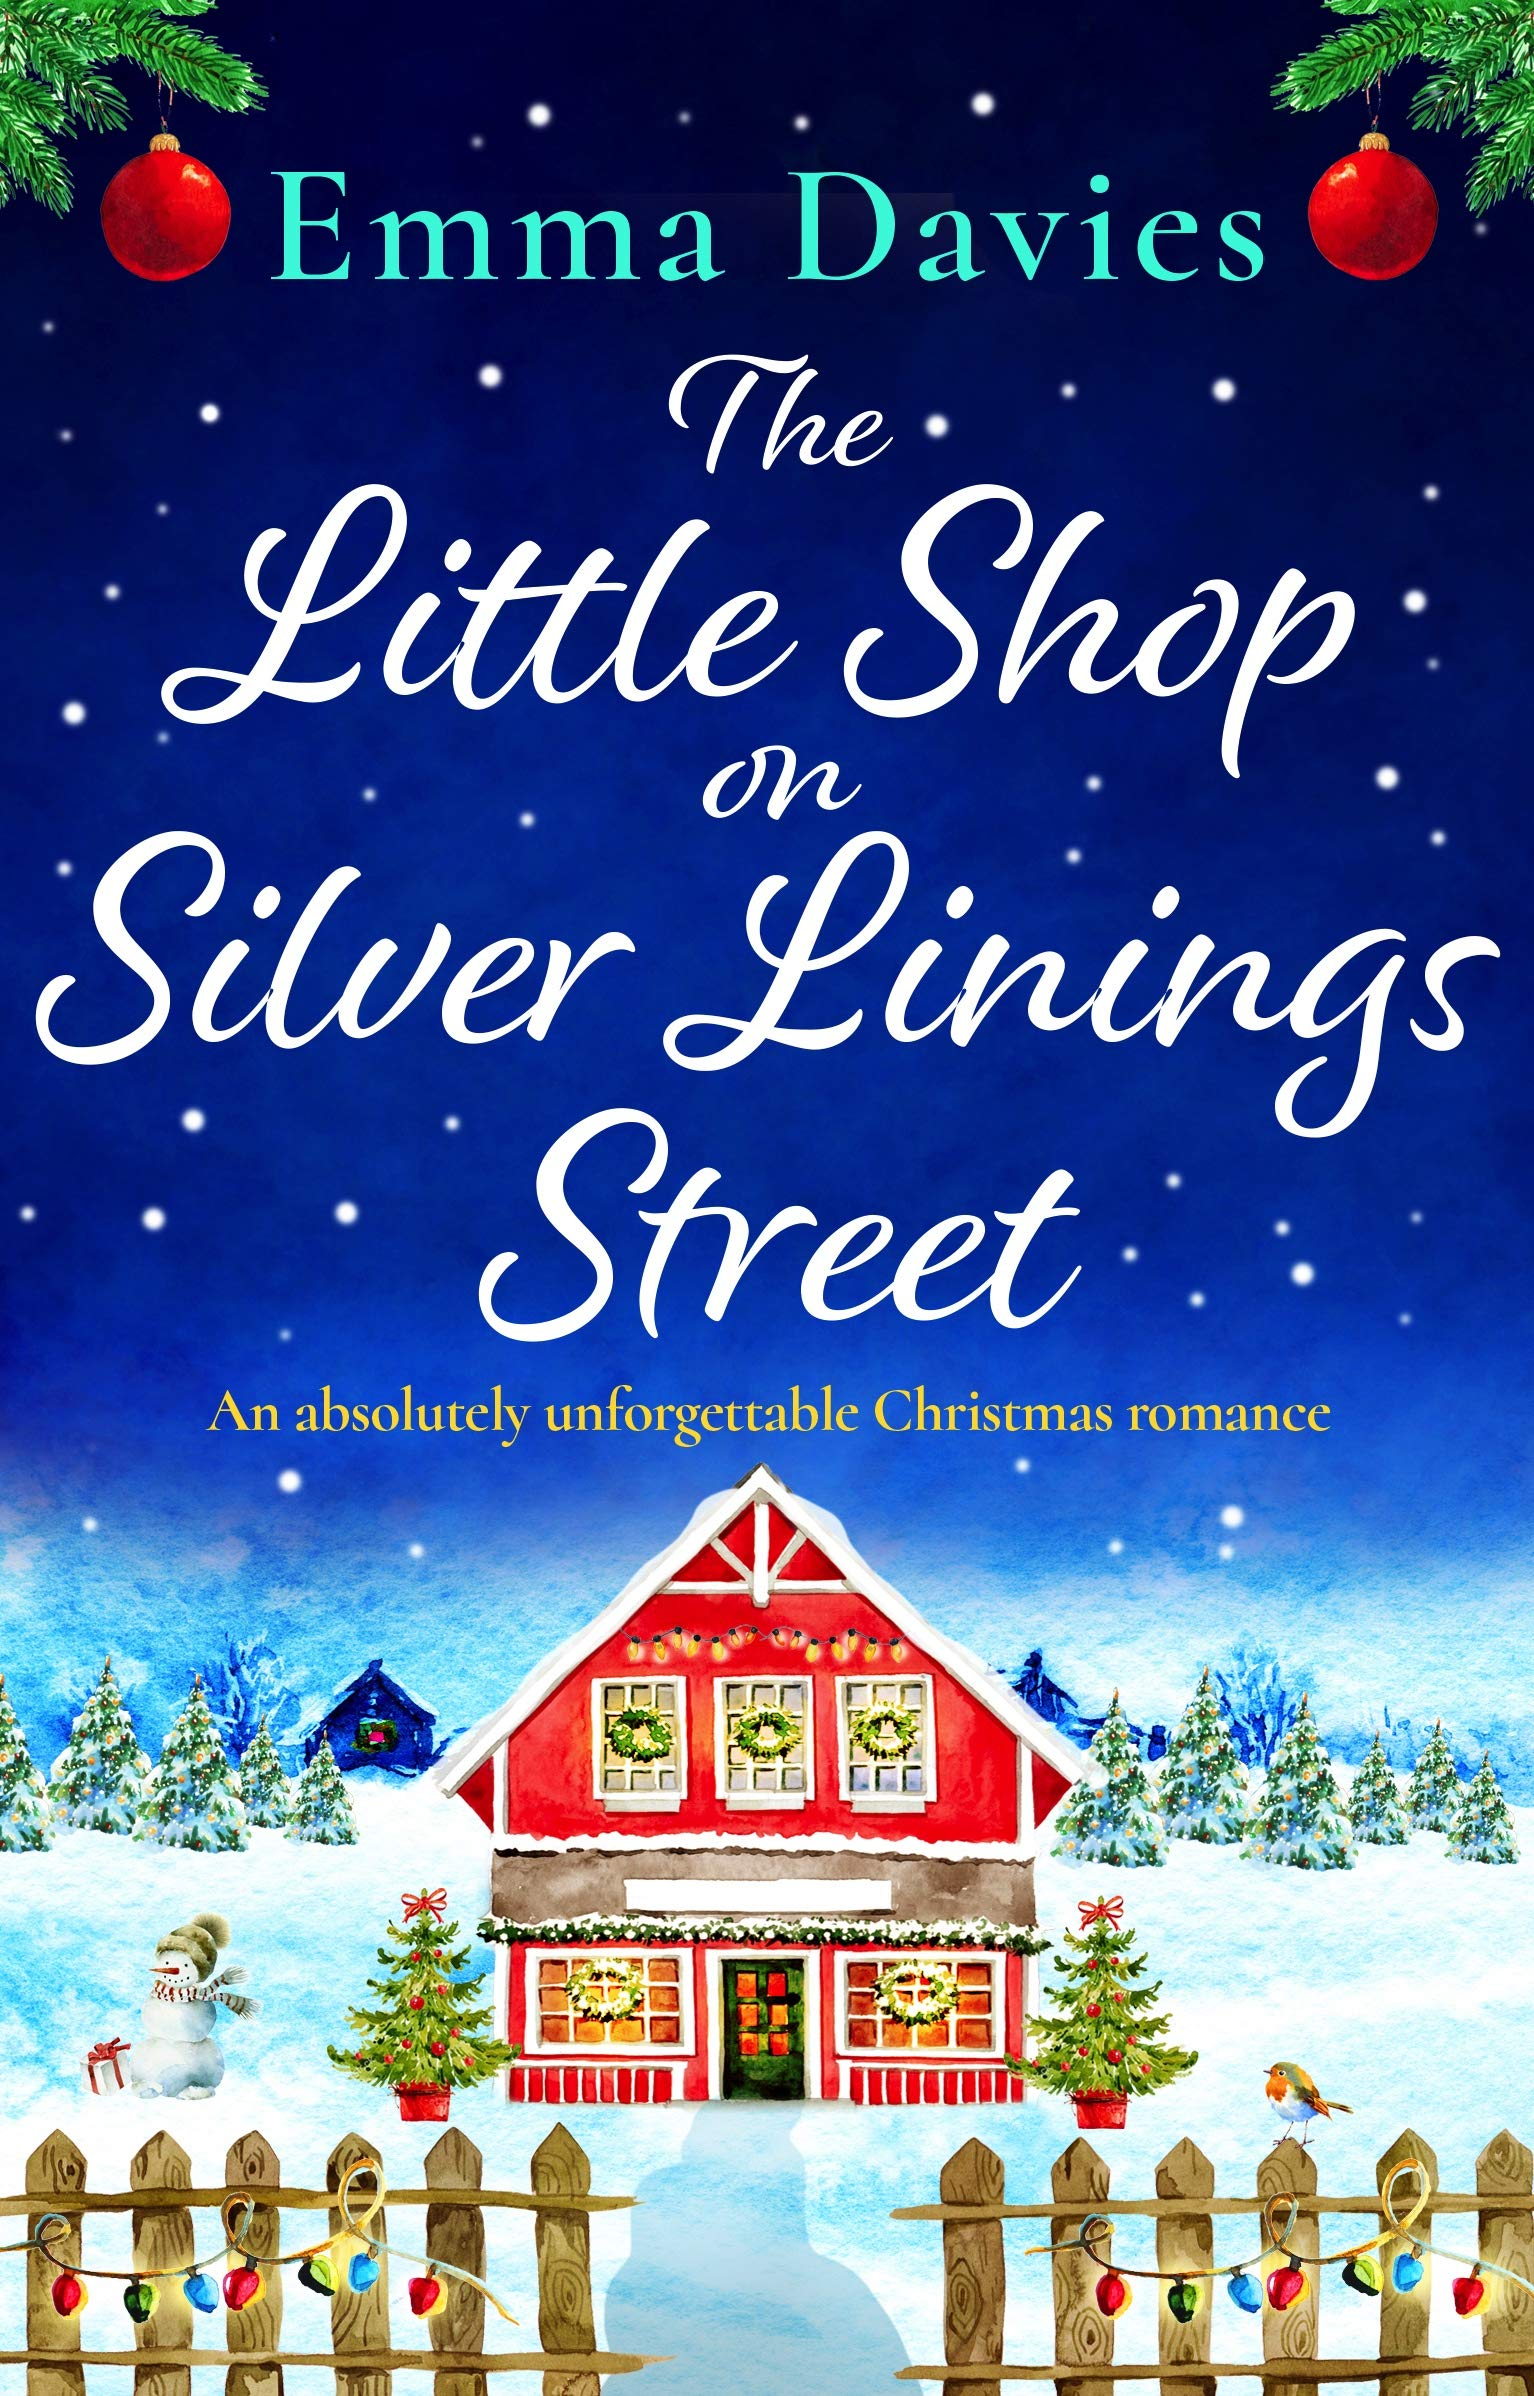 The Little Shop on Silver Linings Street: An